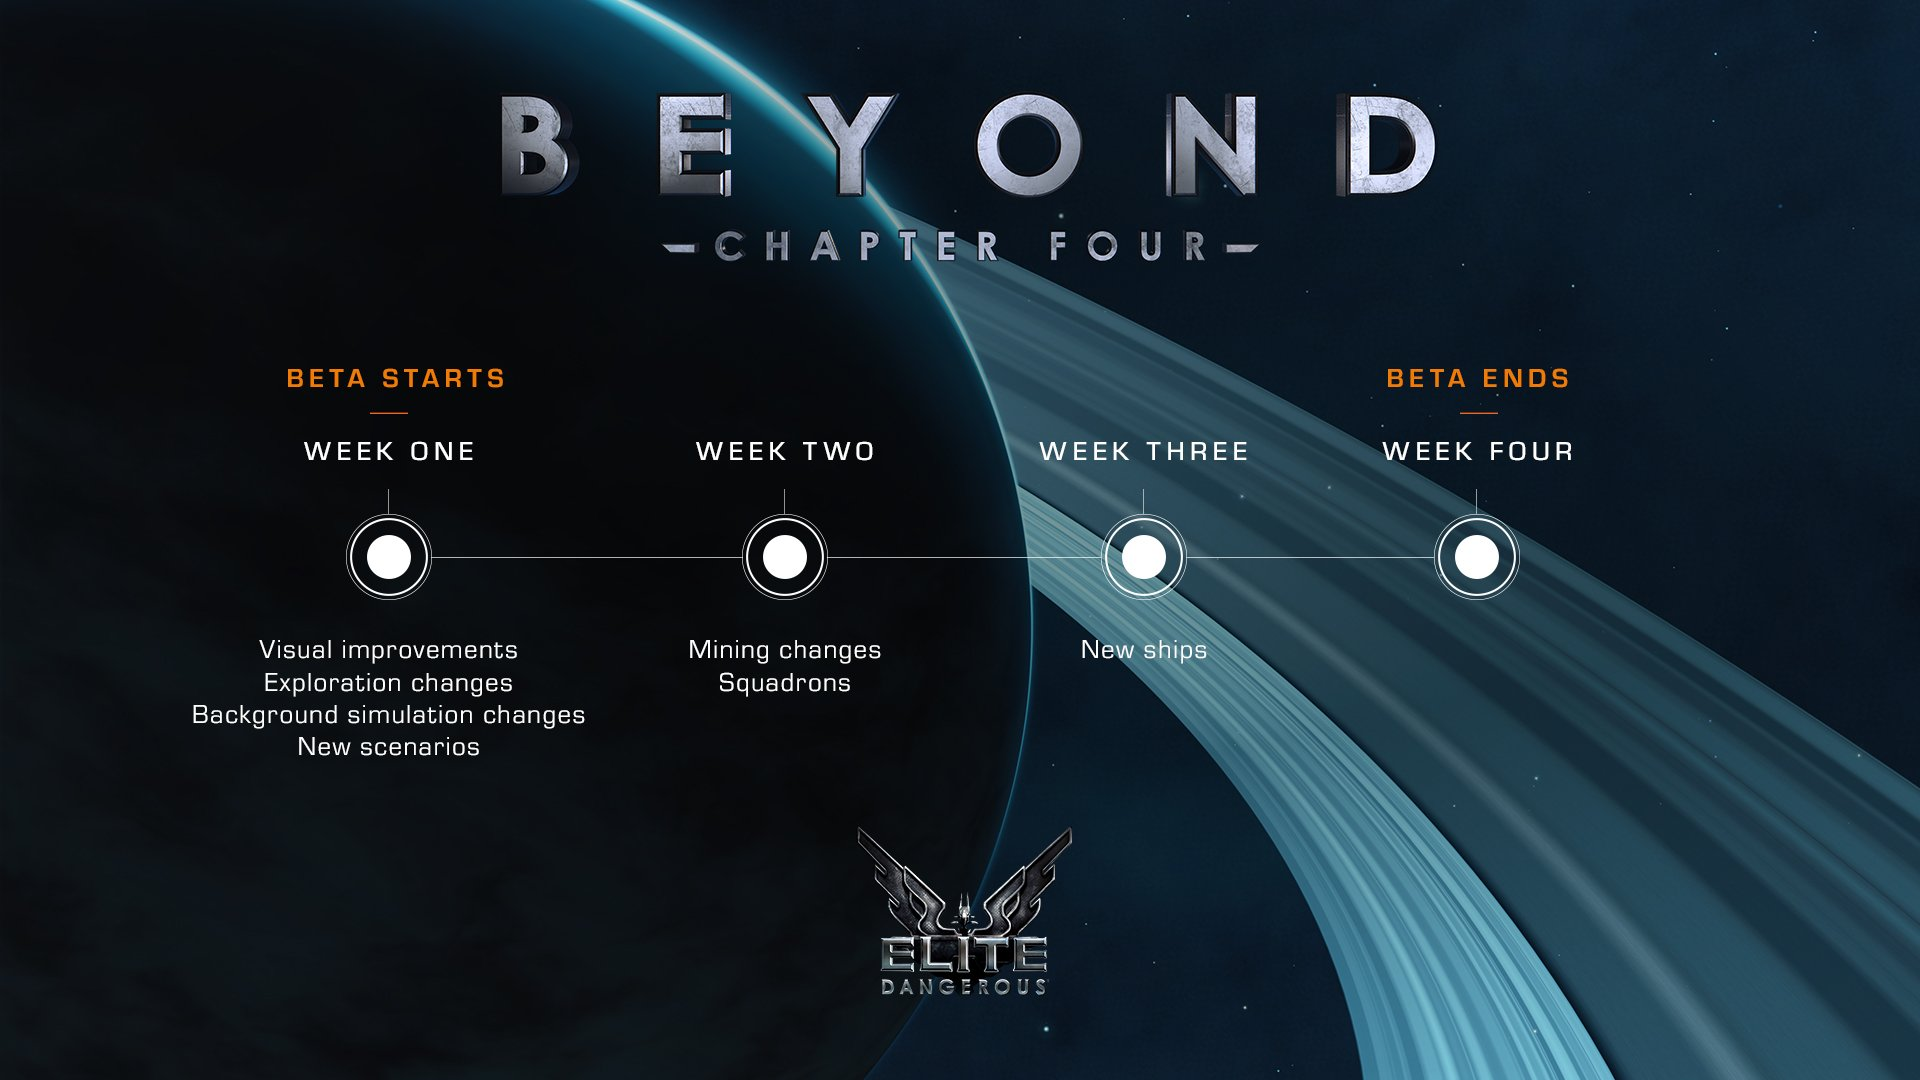 Commanders, here's the timeline of what you can expect during the Beyond - Chapter Four beta! https://t.co/rVdtHGJpgS